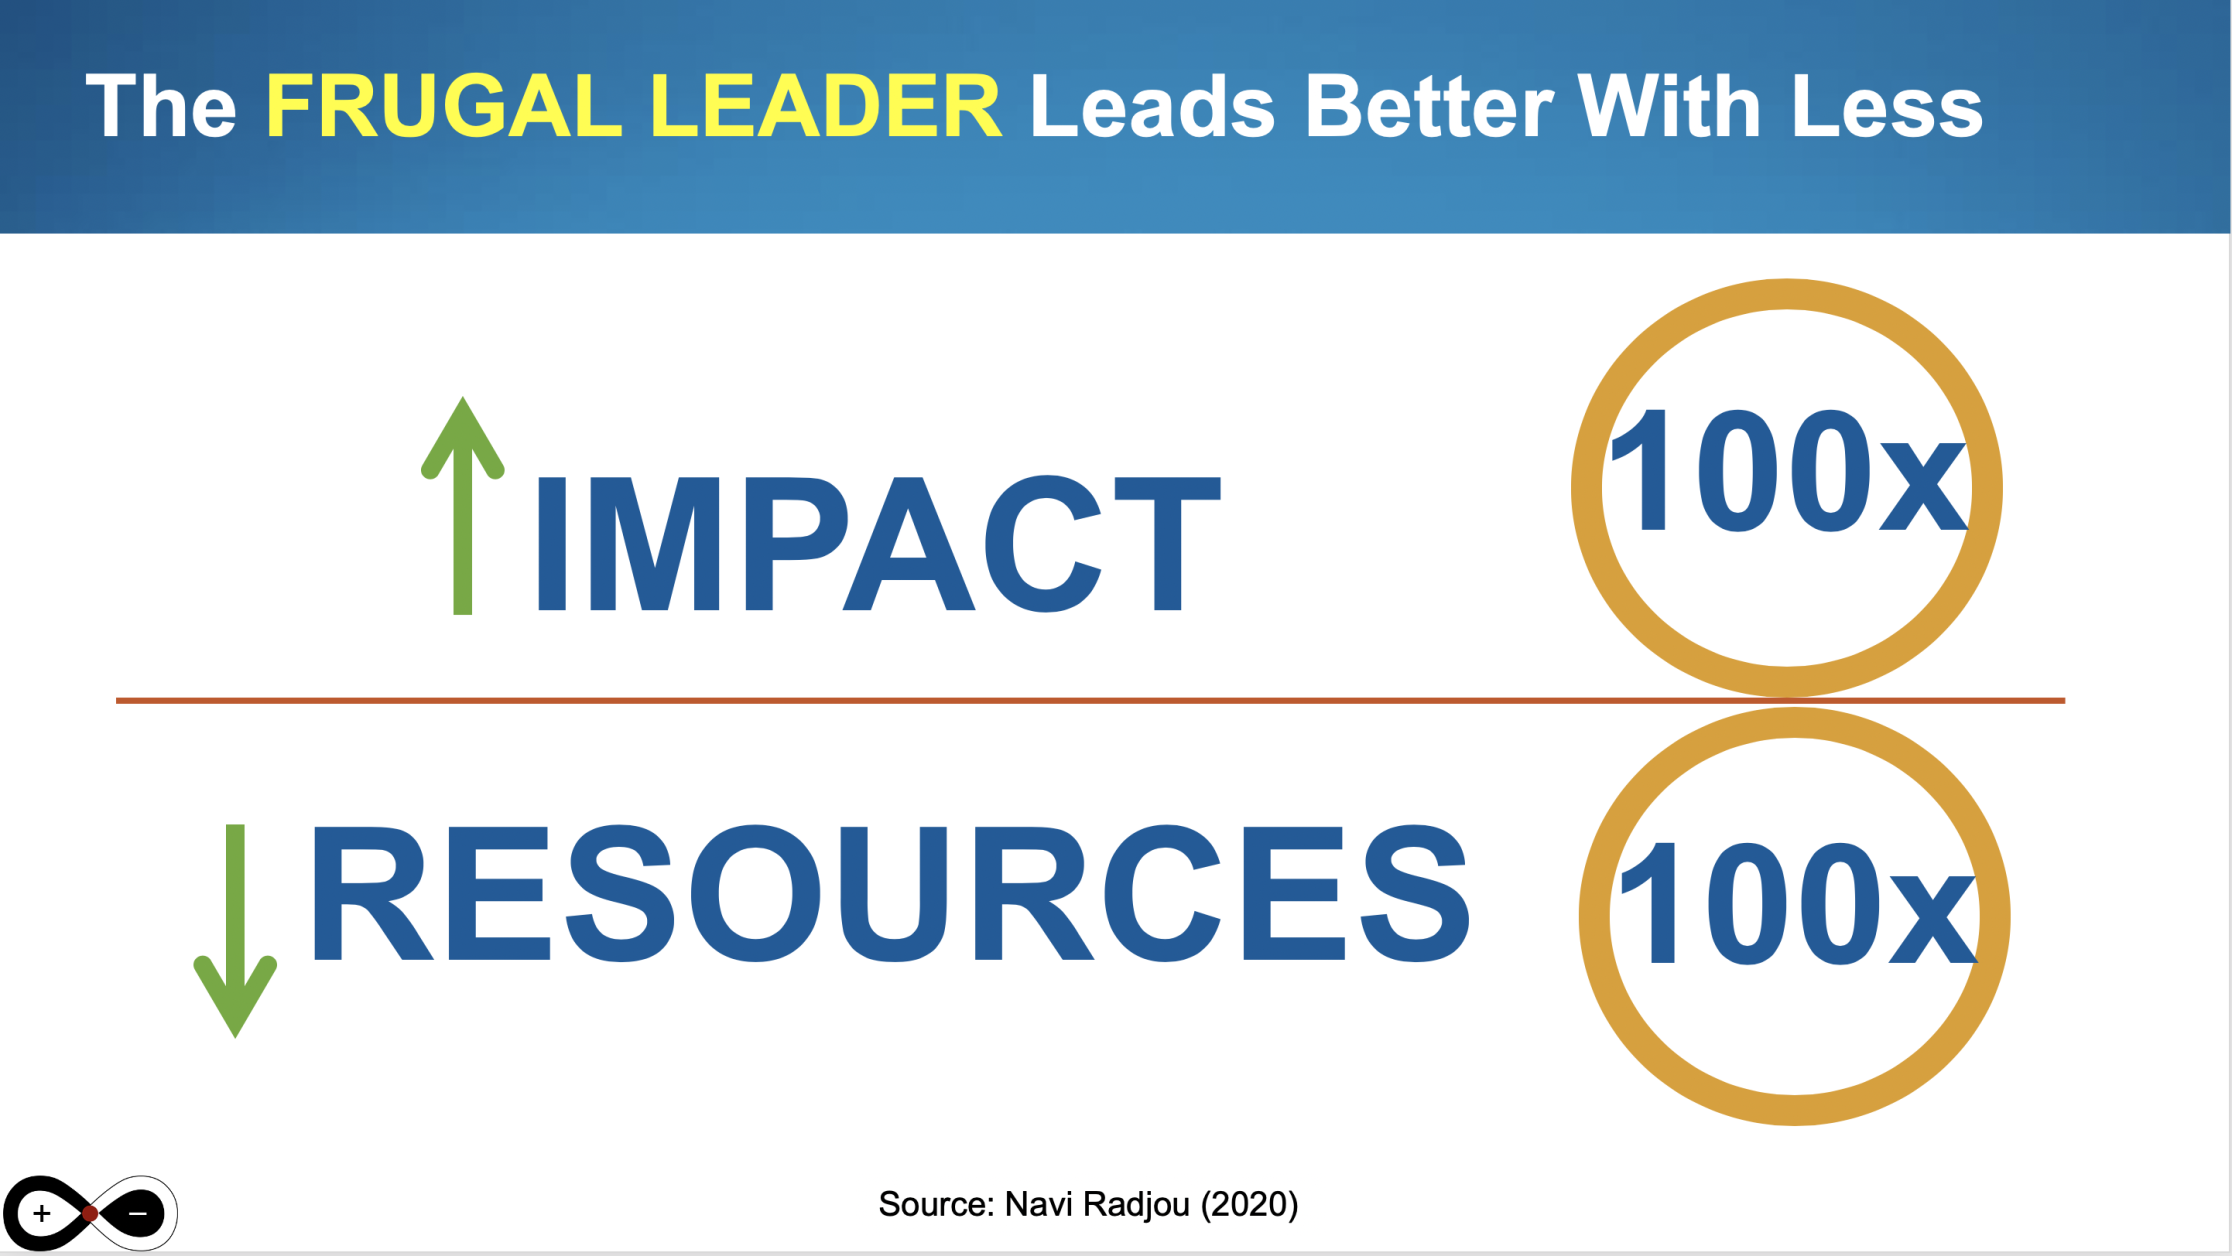 A frugal leader creates greater impact on society using fewer resources